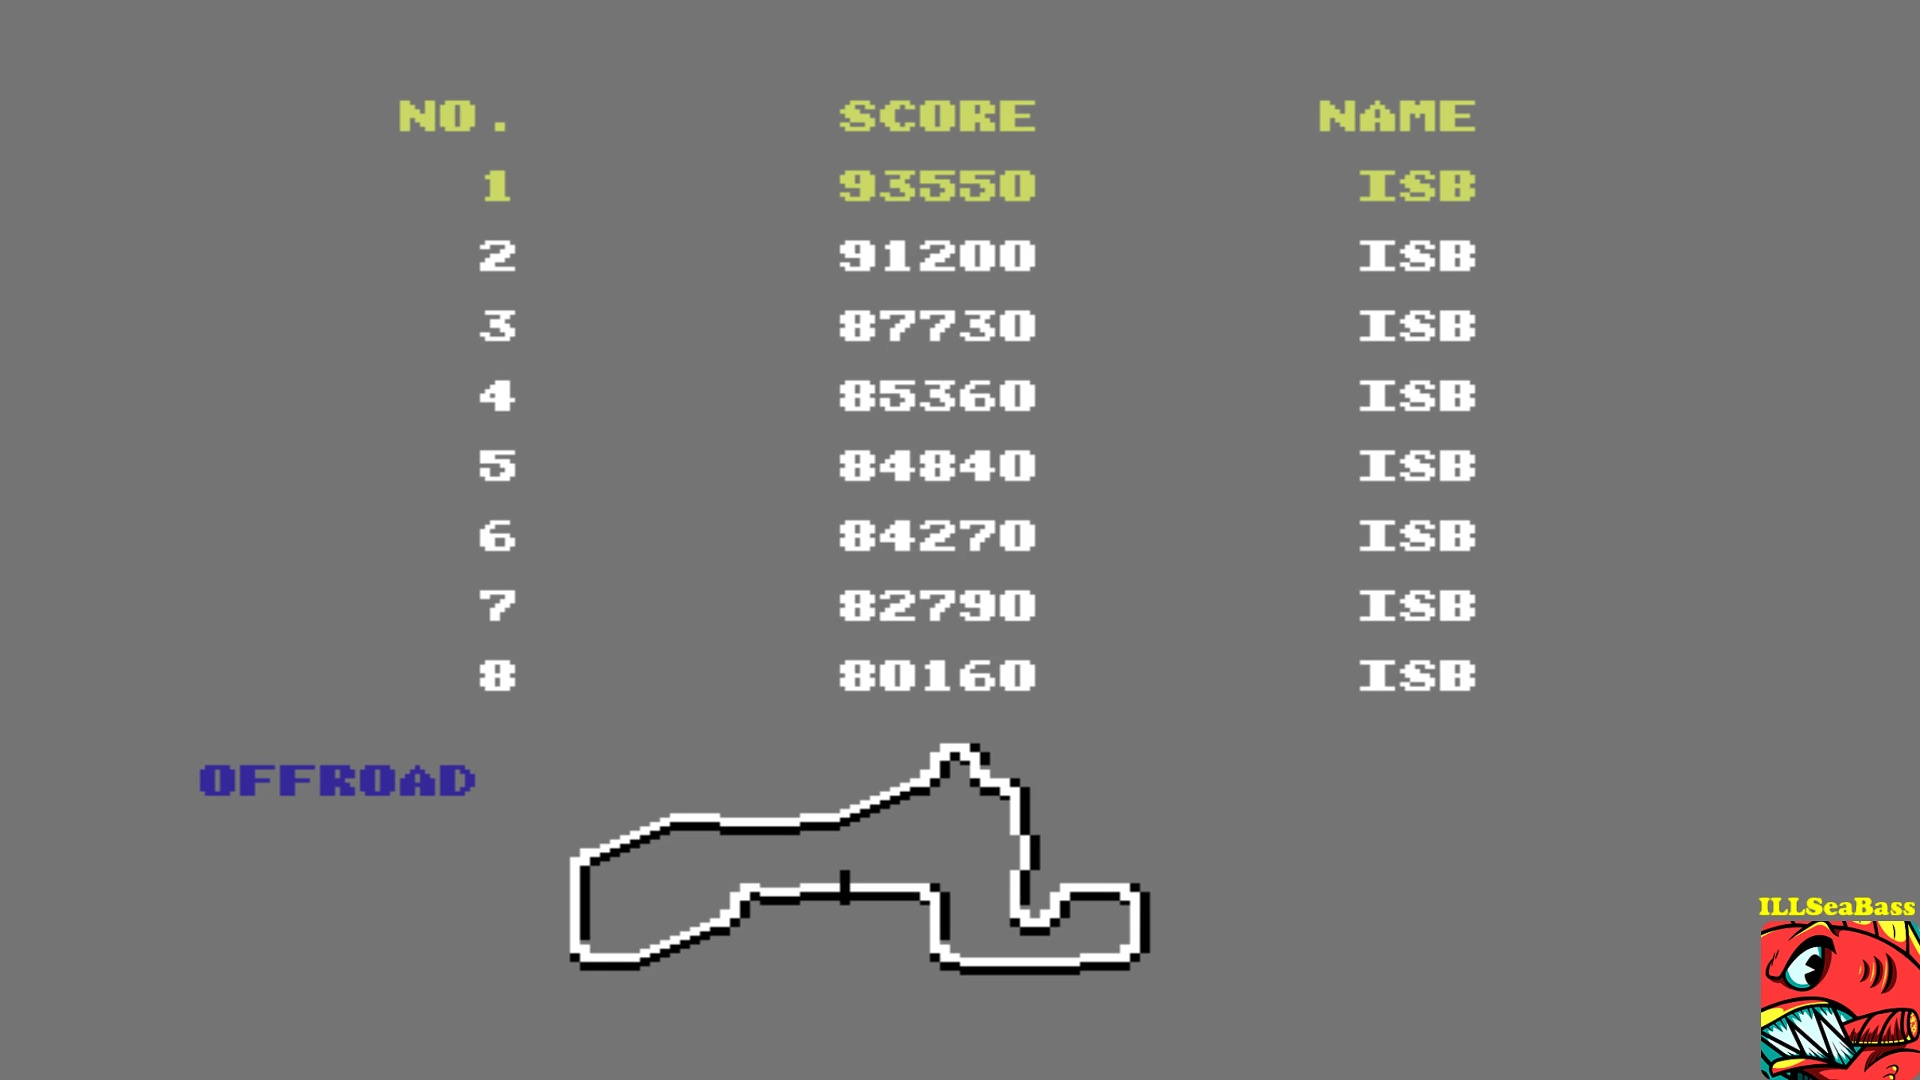 ILLSeaBass: Buggy Boy: Offroad (Commodore 64 Emulated) 93,550 points on 2017-10-22 00:13:53